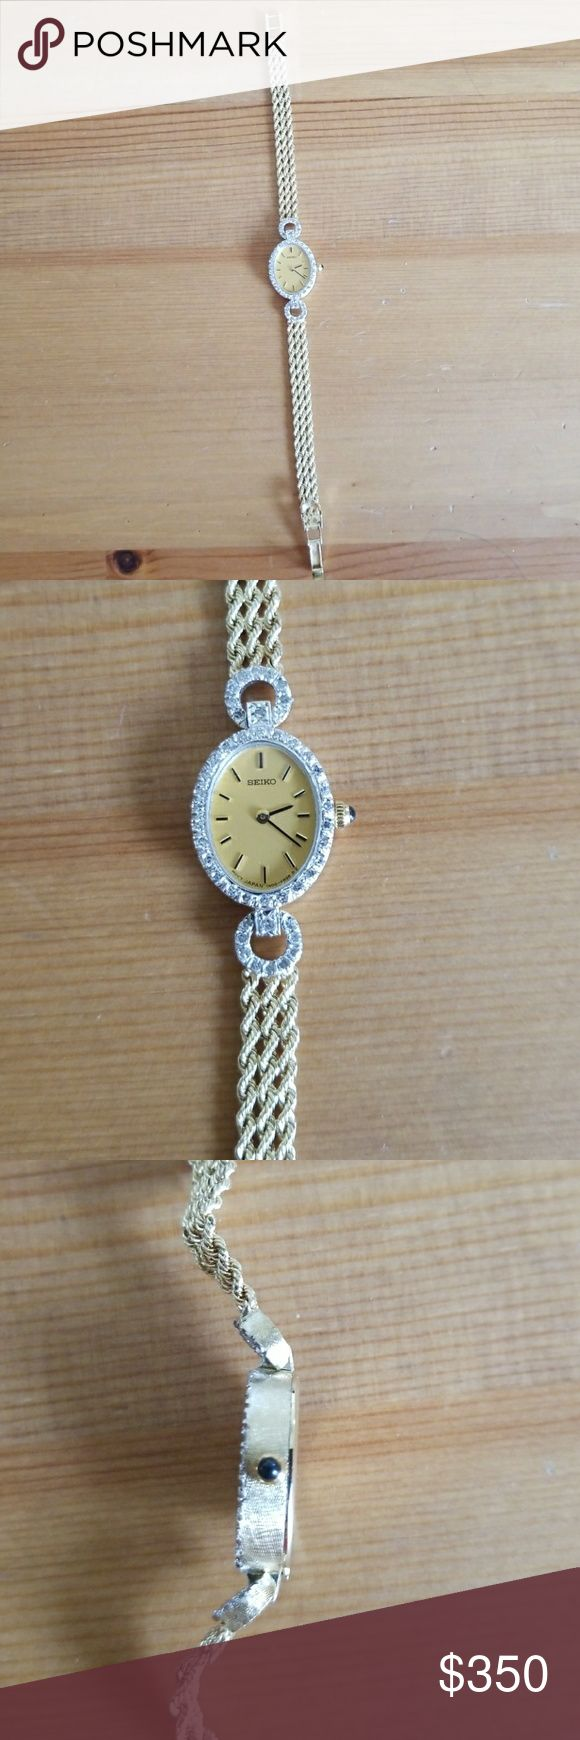 Seiko ladies 14k gold watch with diamonds. Beautiful Seiko ladies 14k gold watch with diamonds around the face.  Blue sapphire stone on the side.  Rarely worn in perfect condition. Seiko Accessories Watches